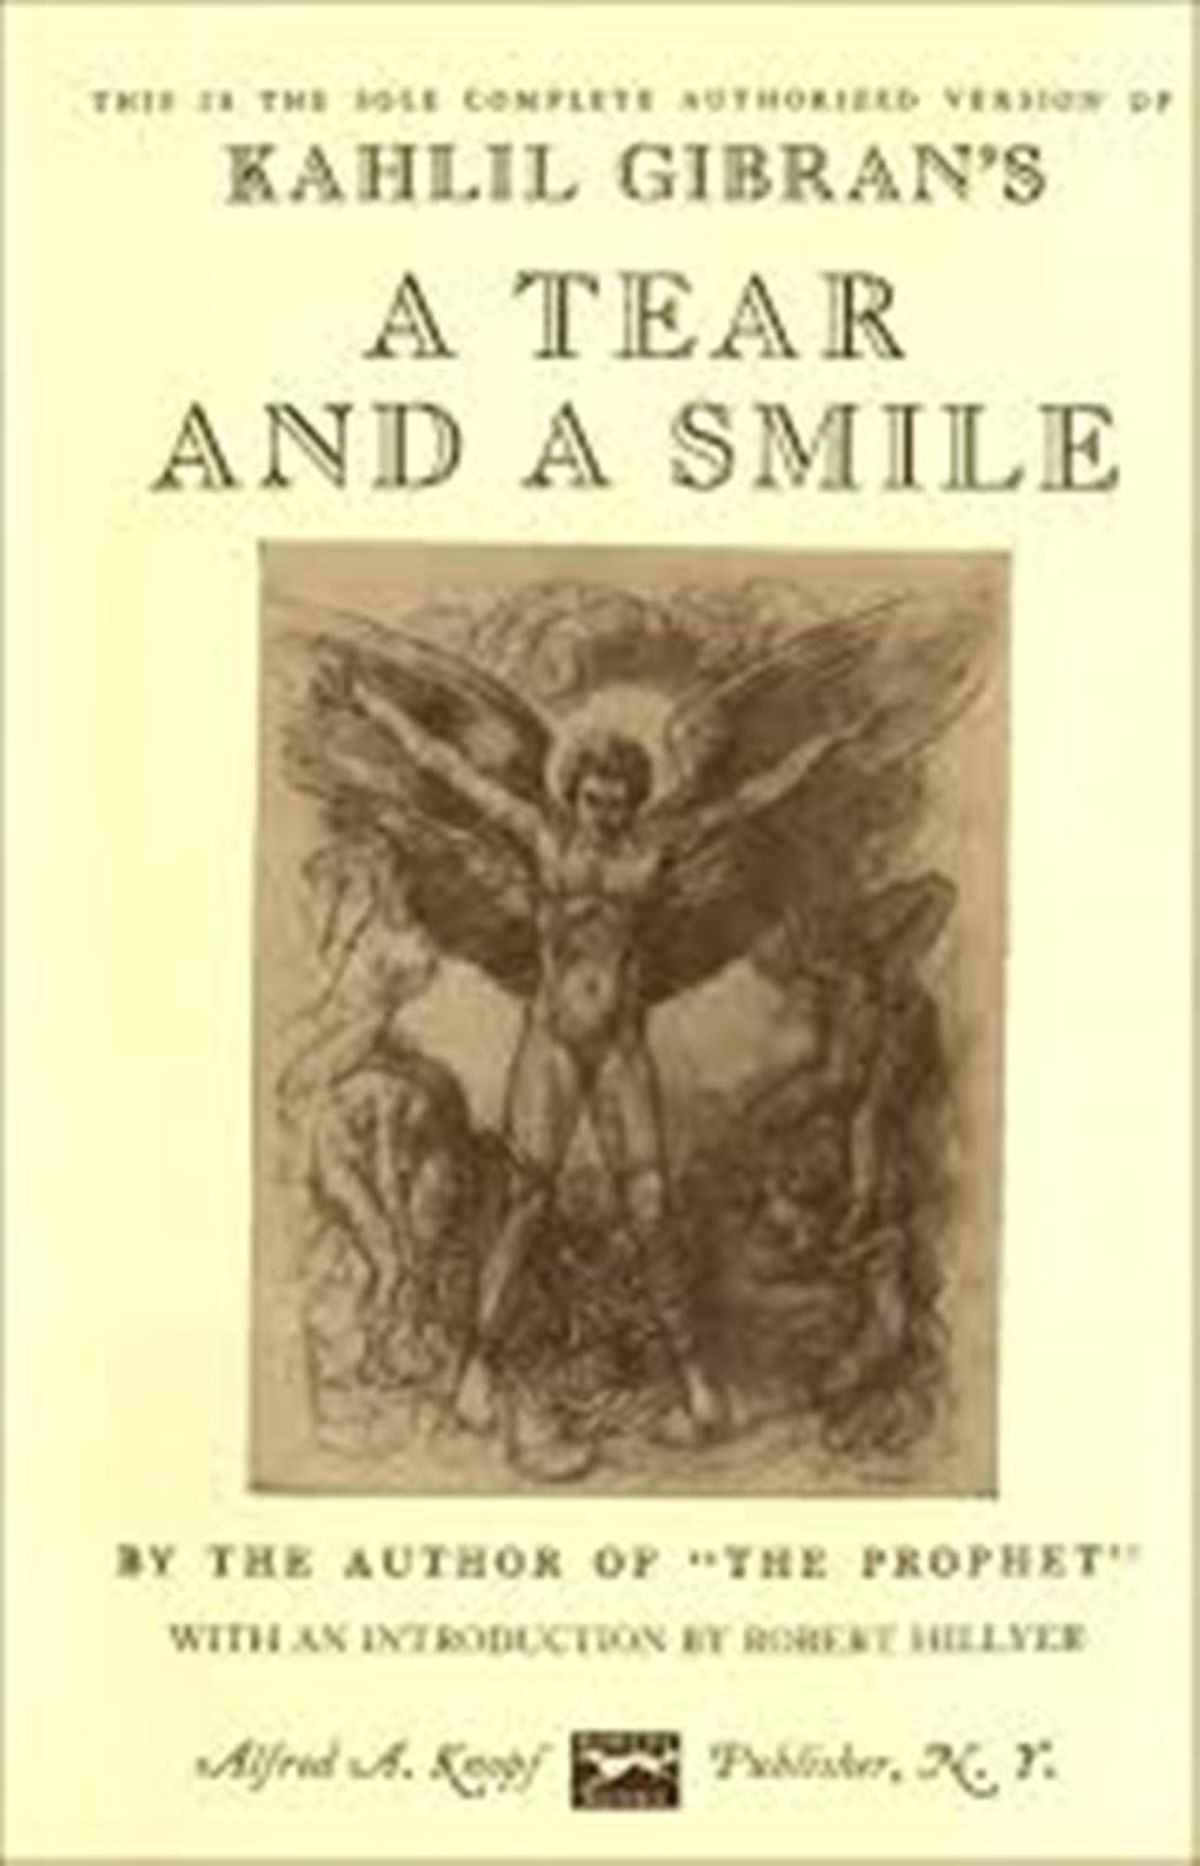 K. Gibran, A Tear and a Smile, Translated from the Arabic by H.M. Nahmad, With an Introduction by Robert Hillyer, New York: Knopf, 1950.